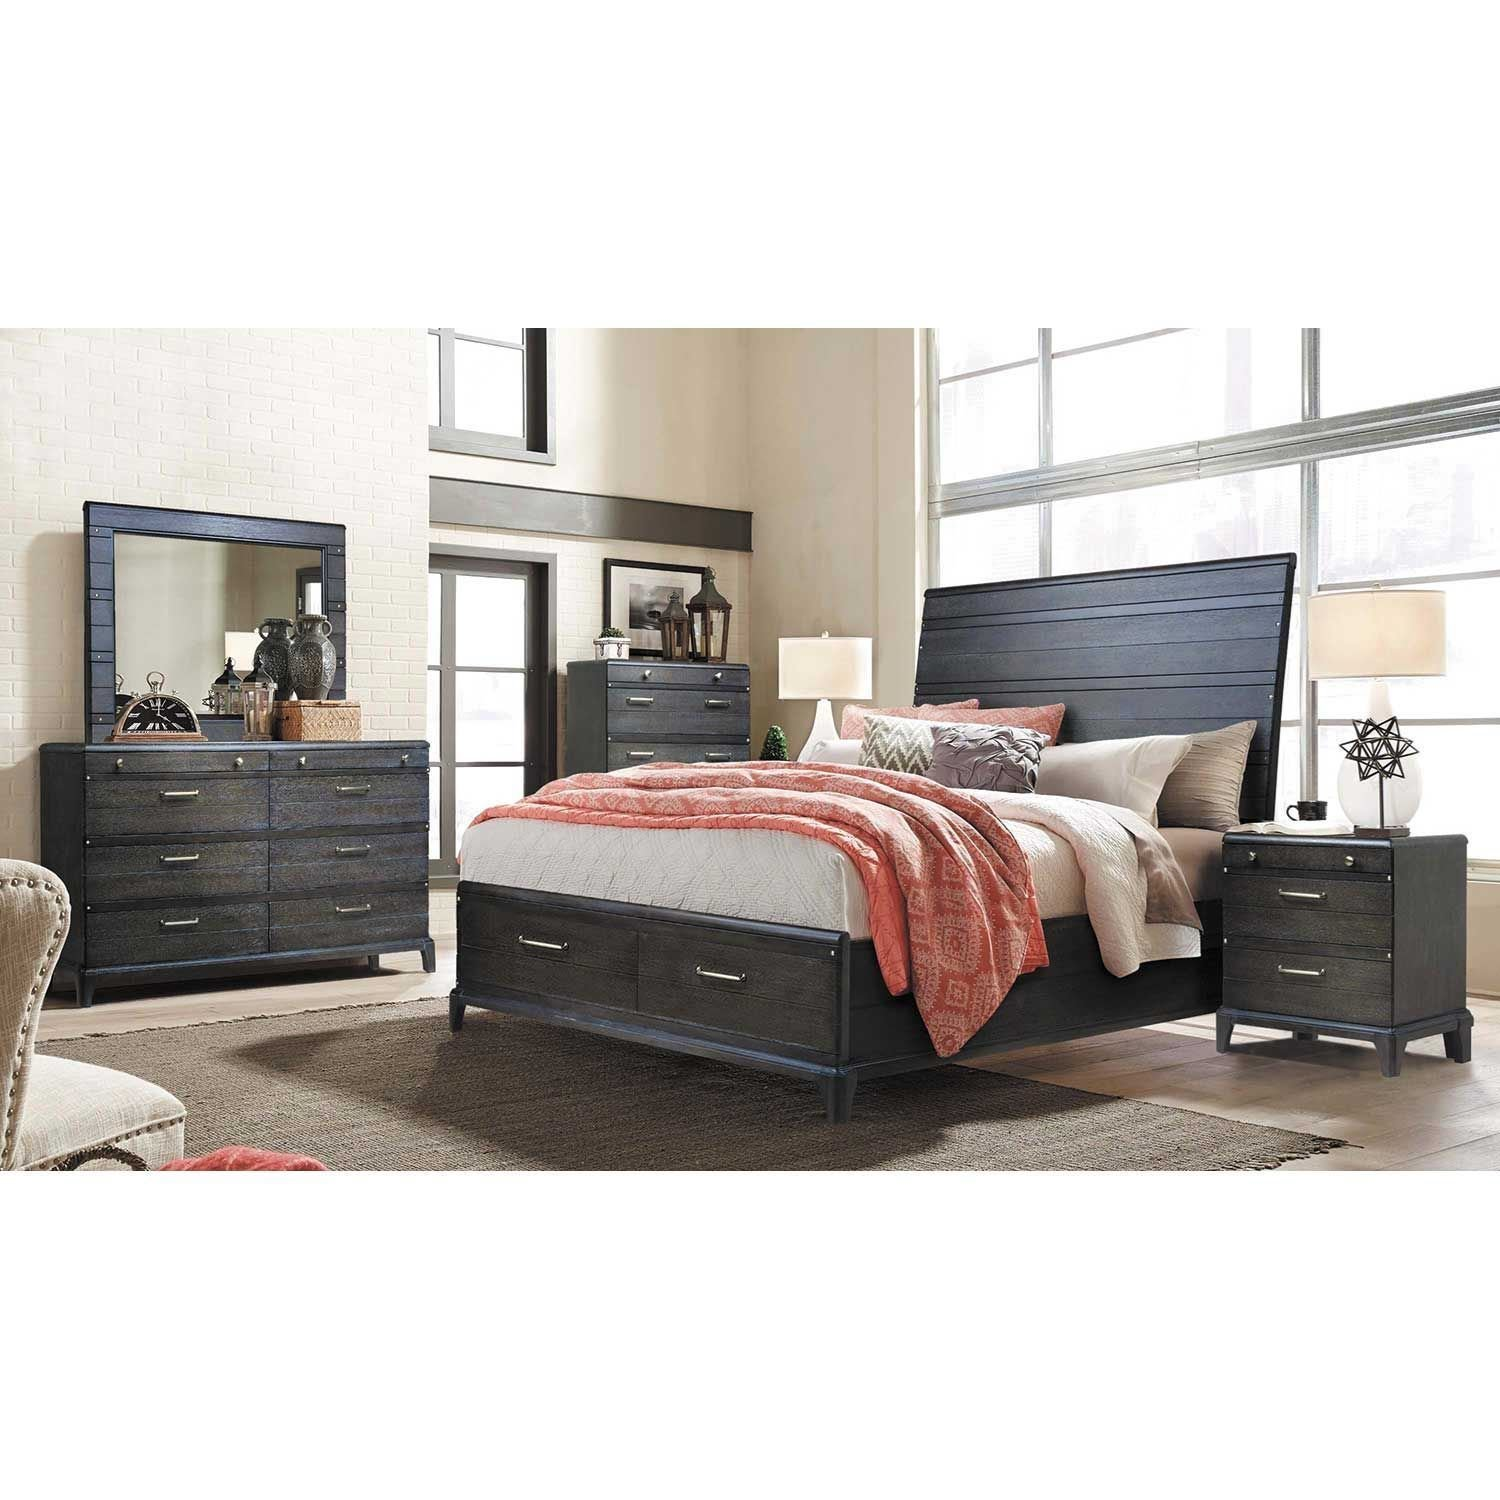 Best Hickory Dark 5 Piece Bedroom Set 450 Qbed 110 121 130 With Pictures